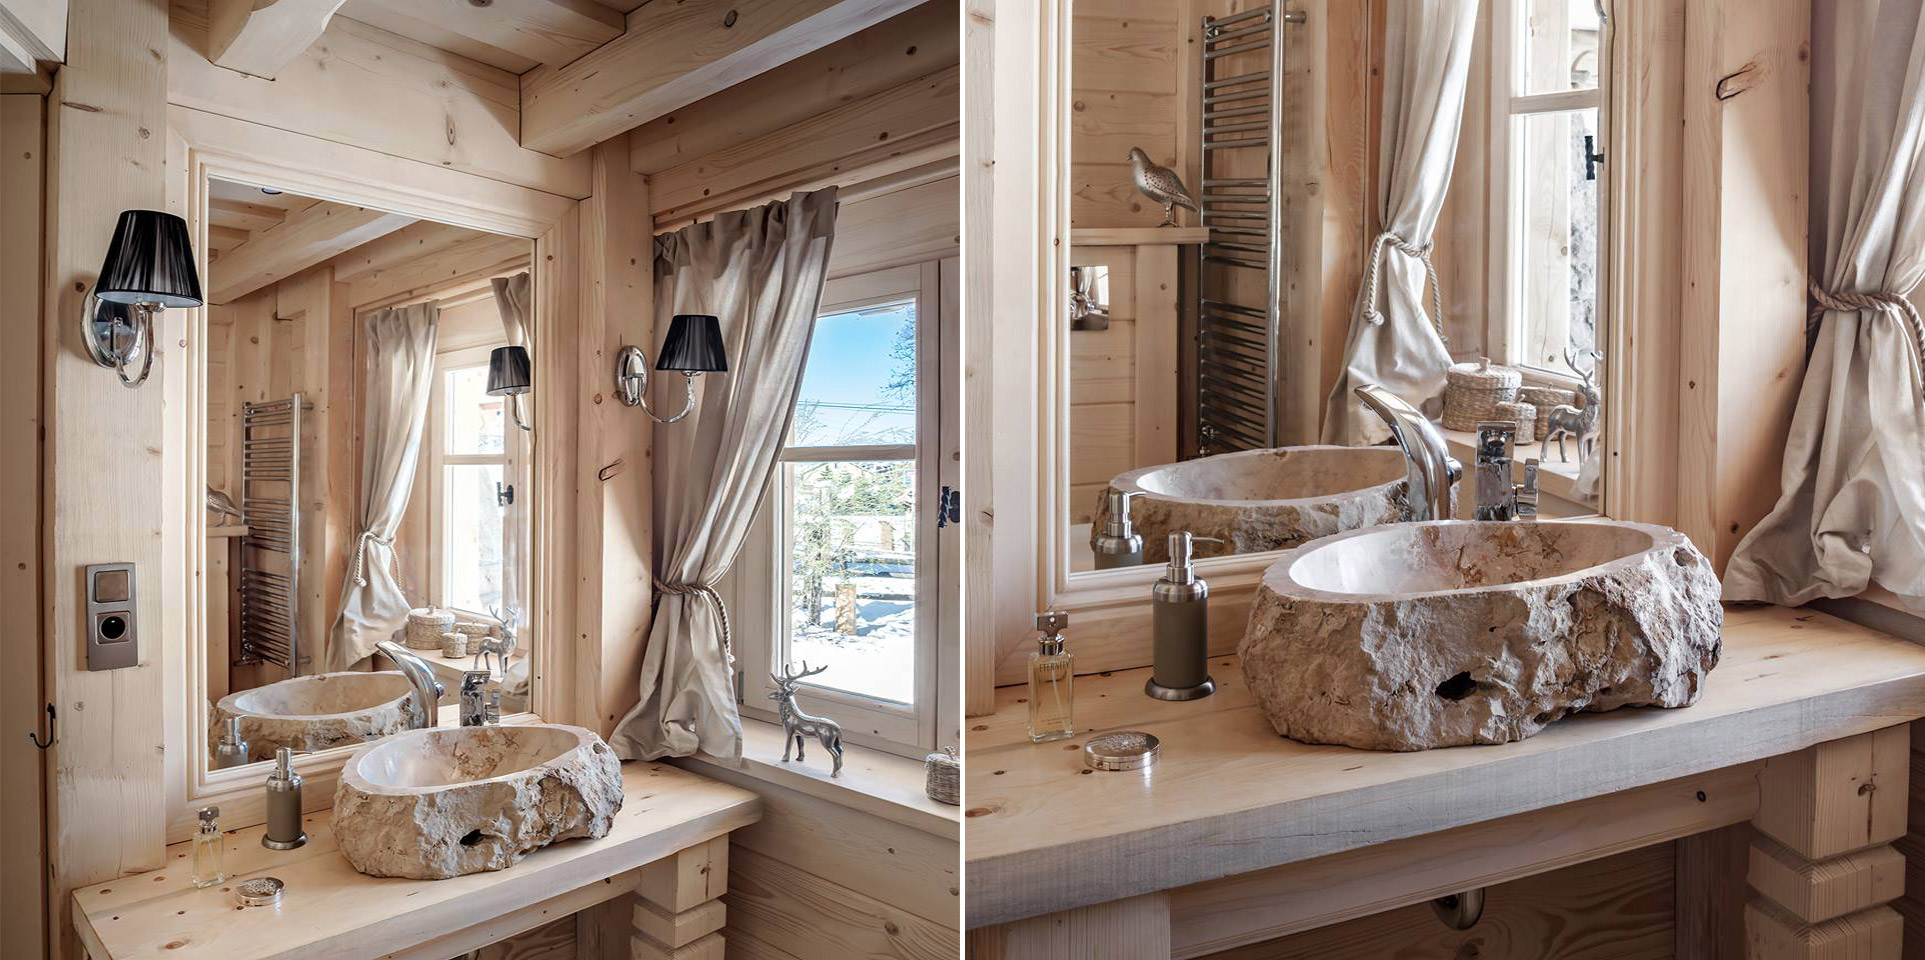 Wooden bathroom with a stone sink